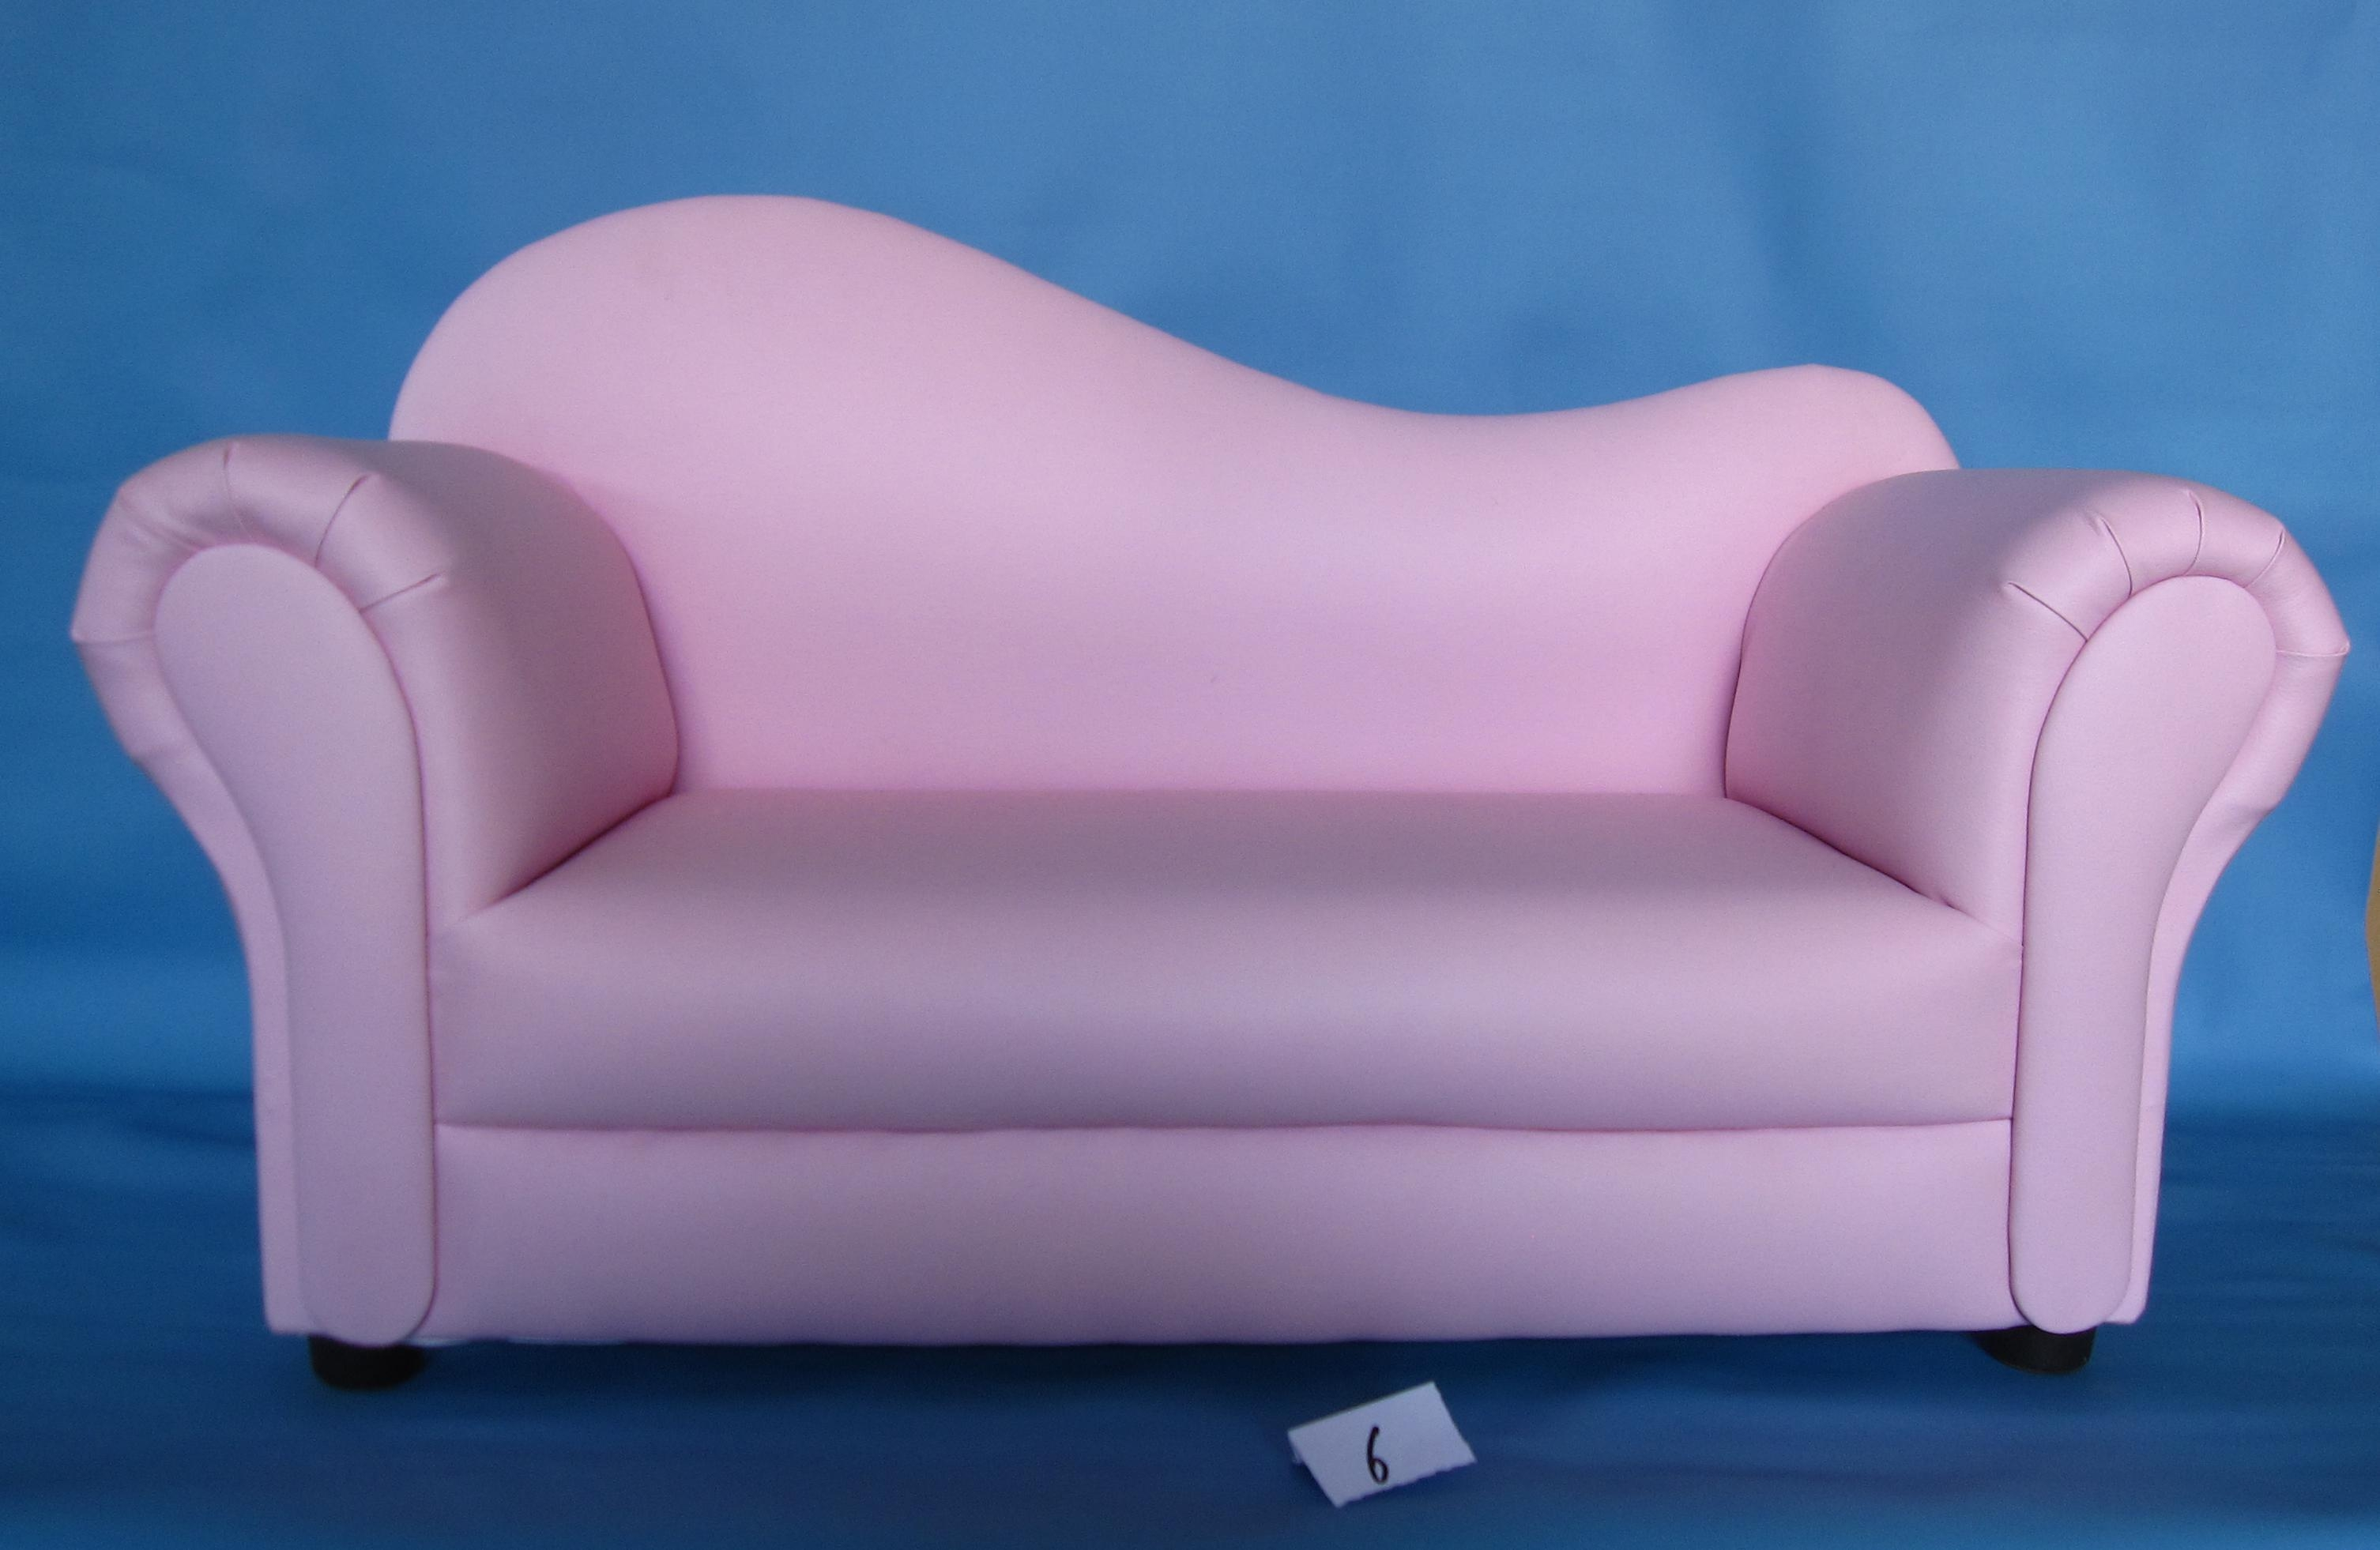 sofas online cheap top 10 sofa brands in india 20 best kids ideas